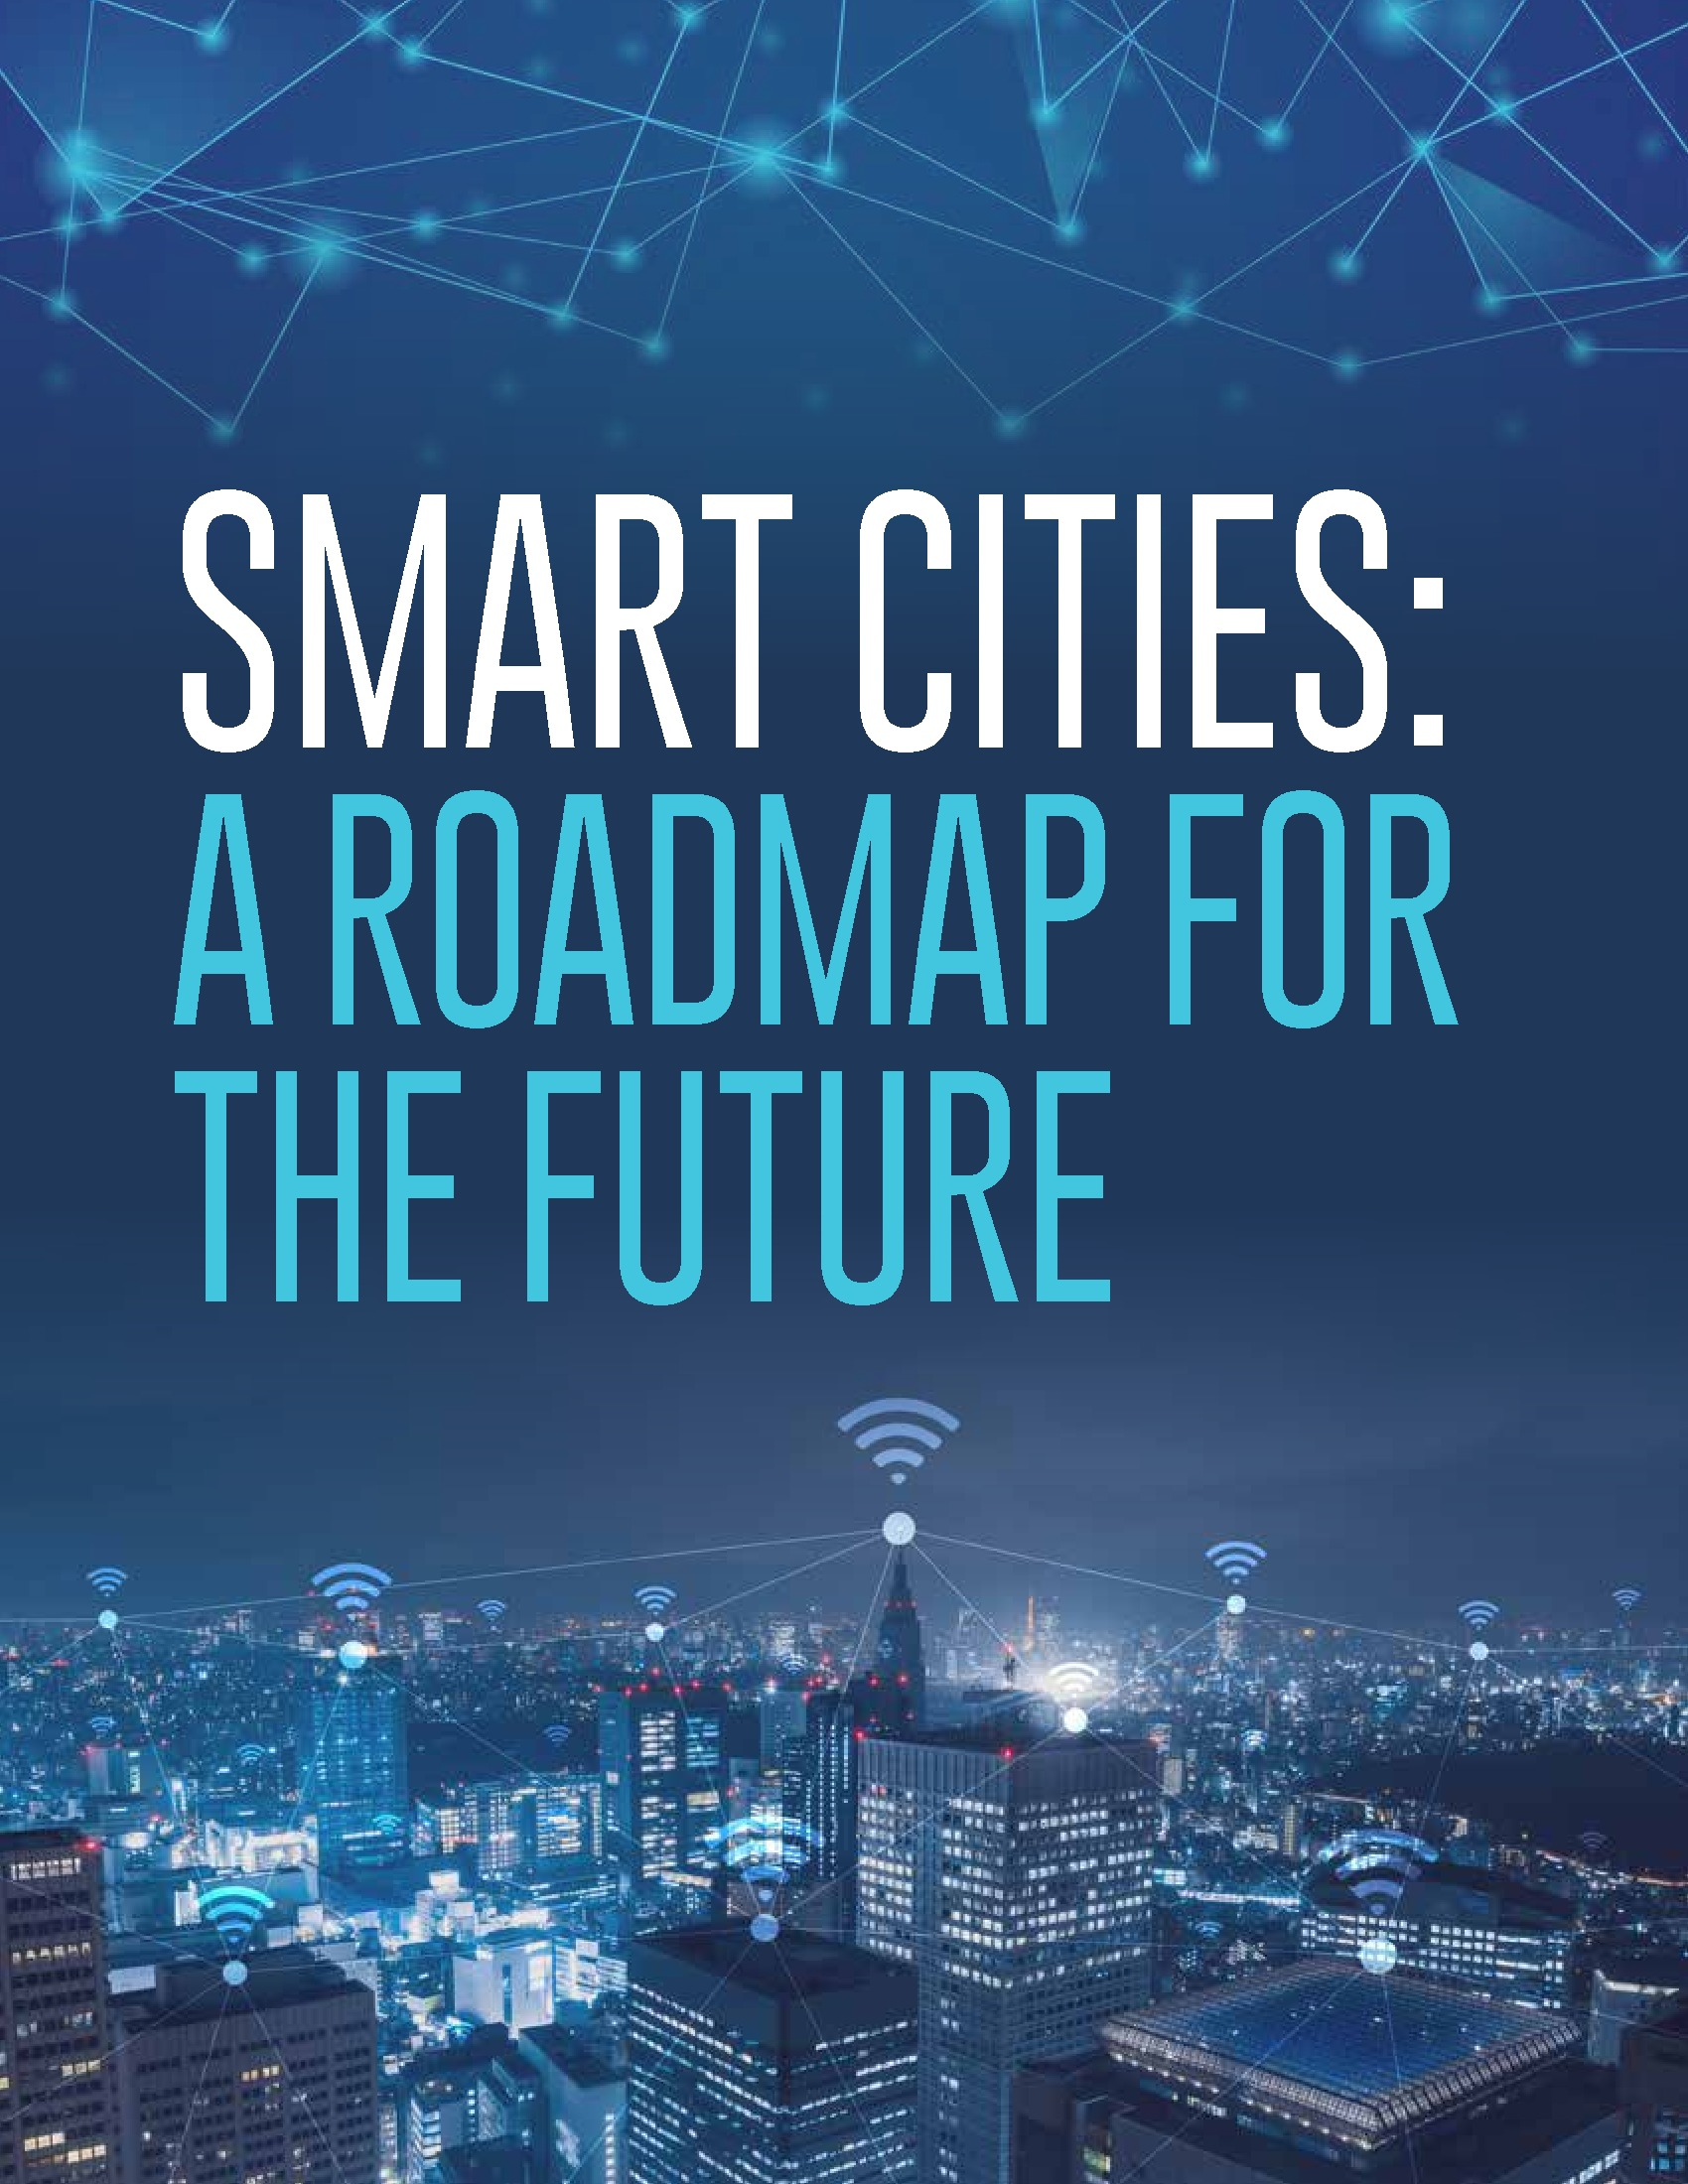 Smart Cities: A Roadmap for the Future